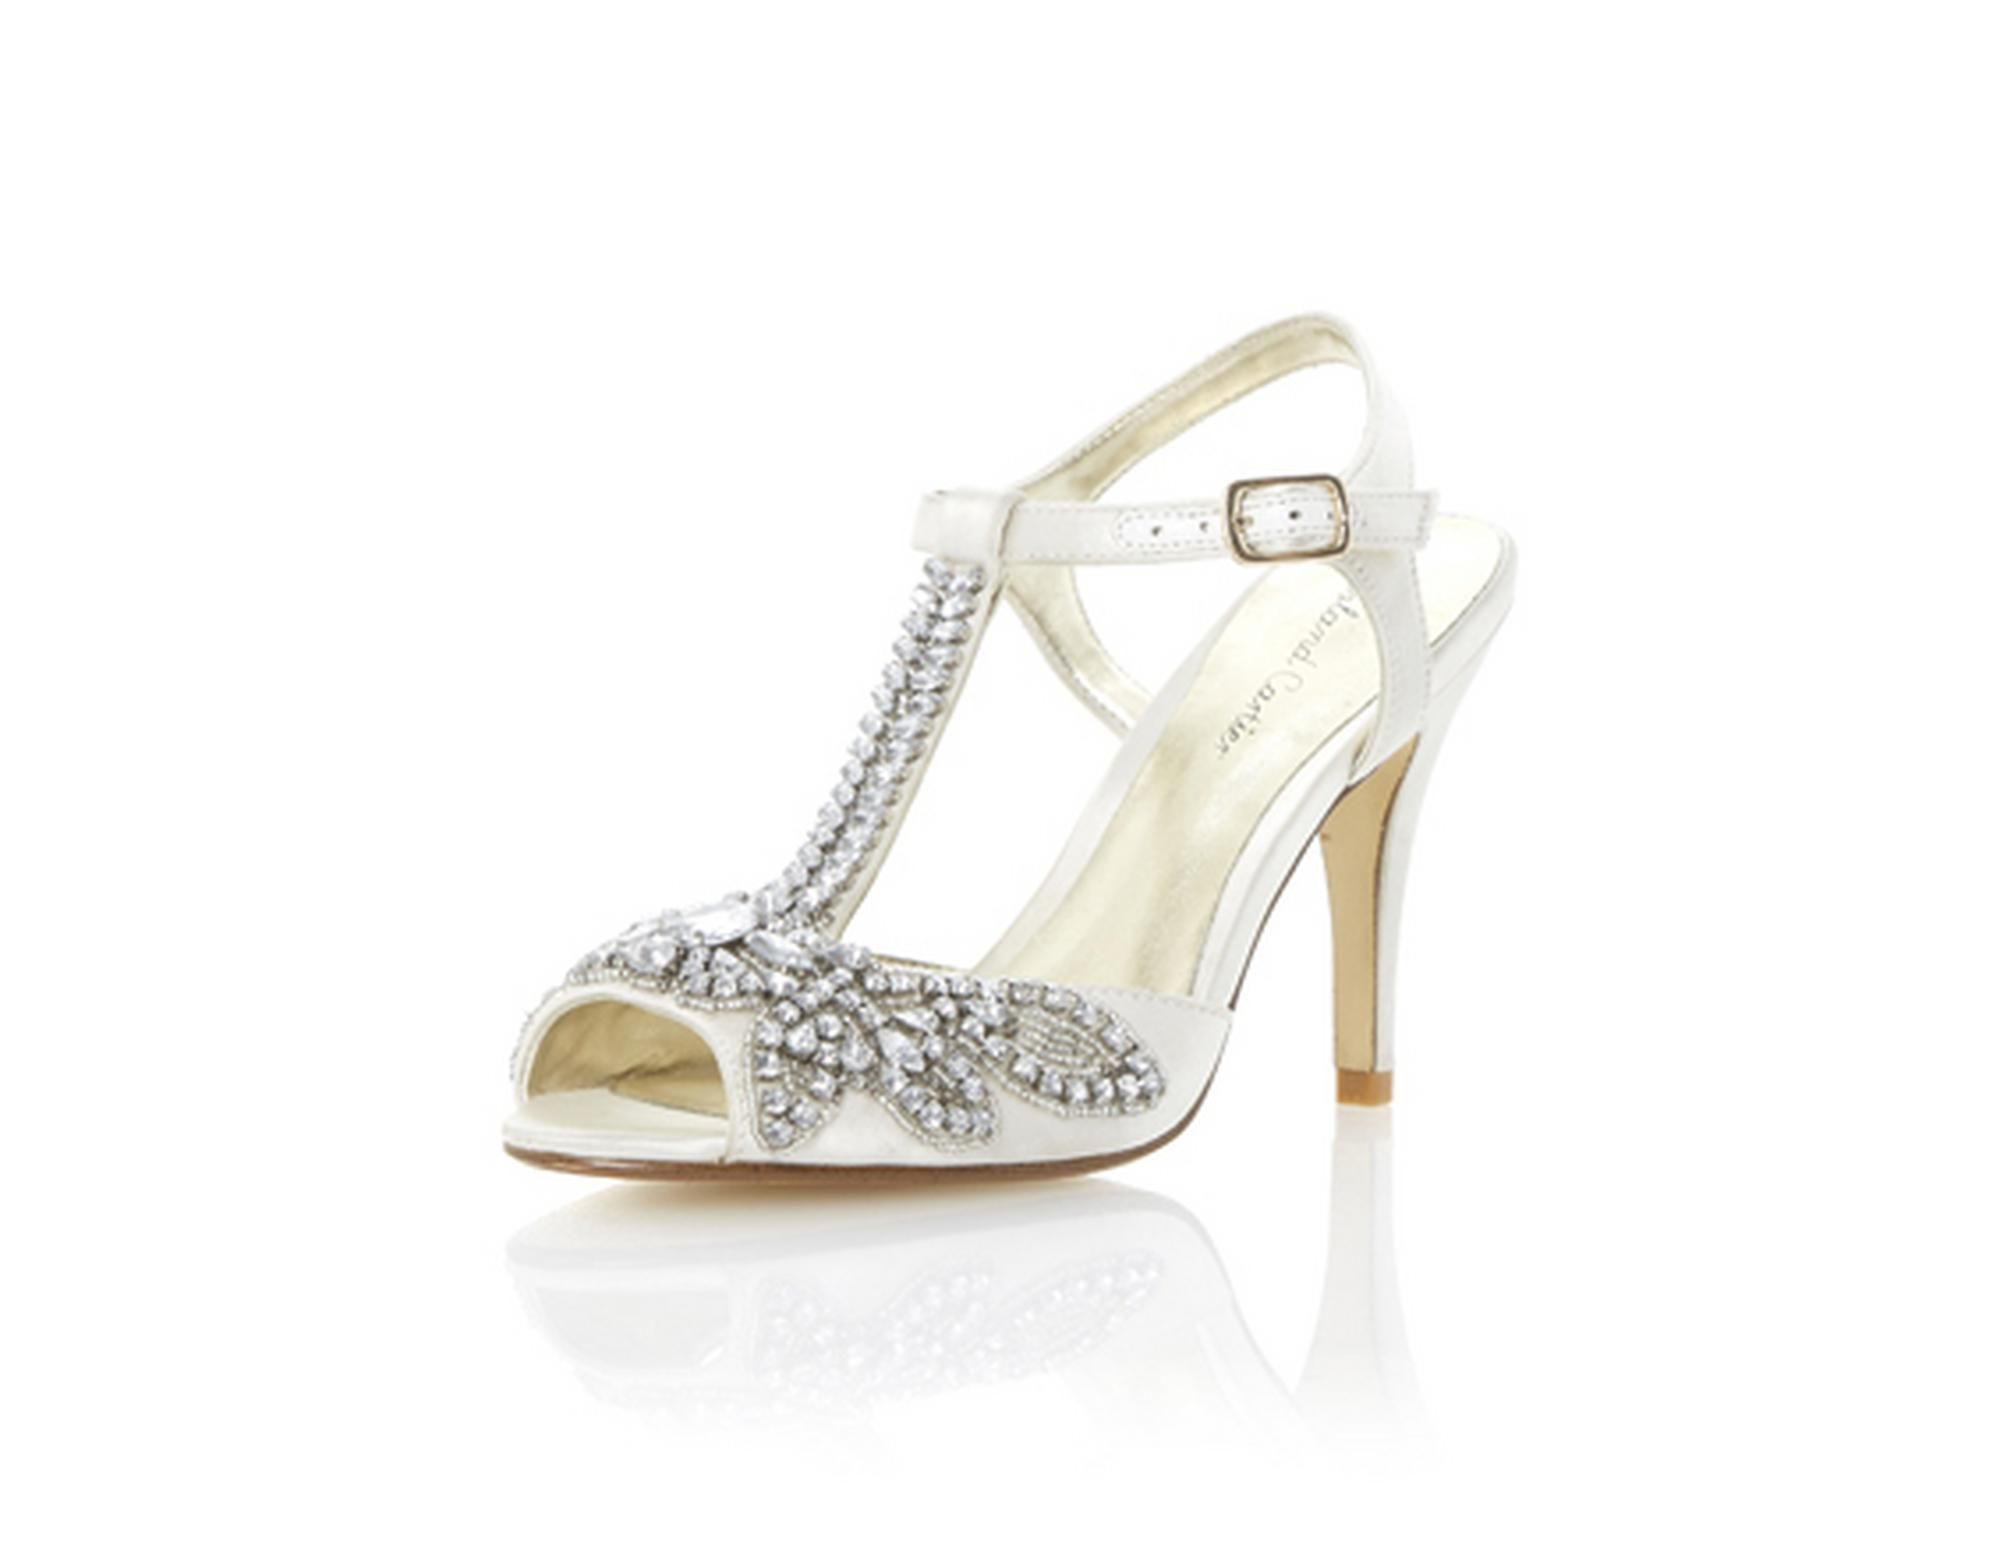 213b5023fb3 Roland Cartier Ladies MONTORI - Embellished Jewel Heeled Sandal - ivory